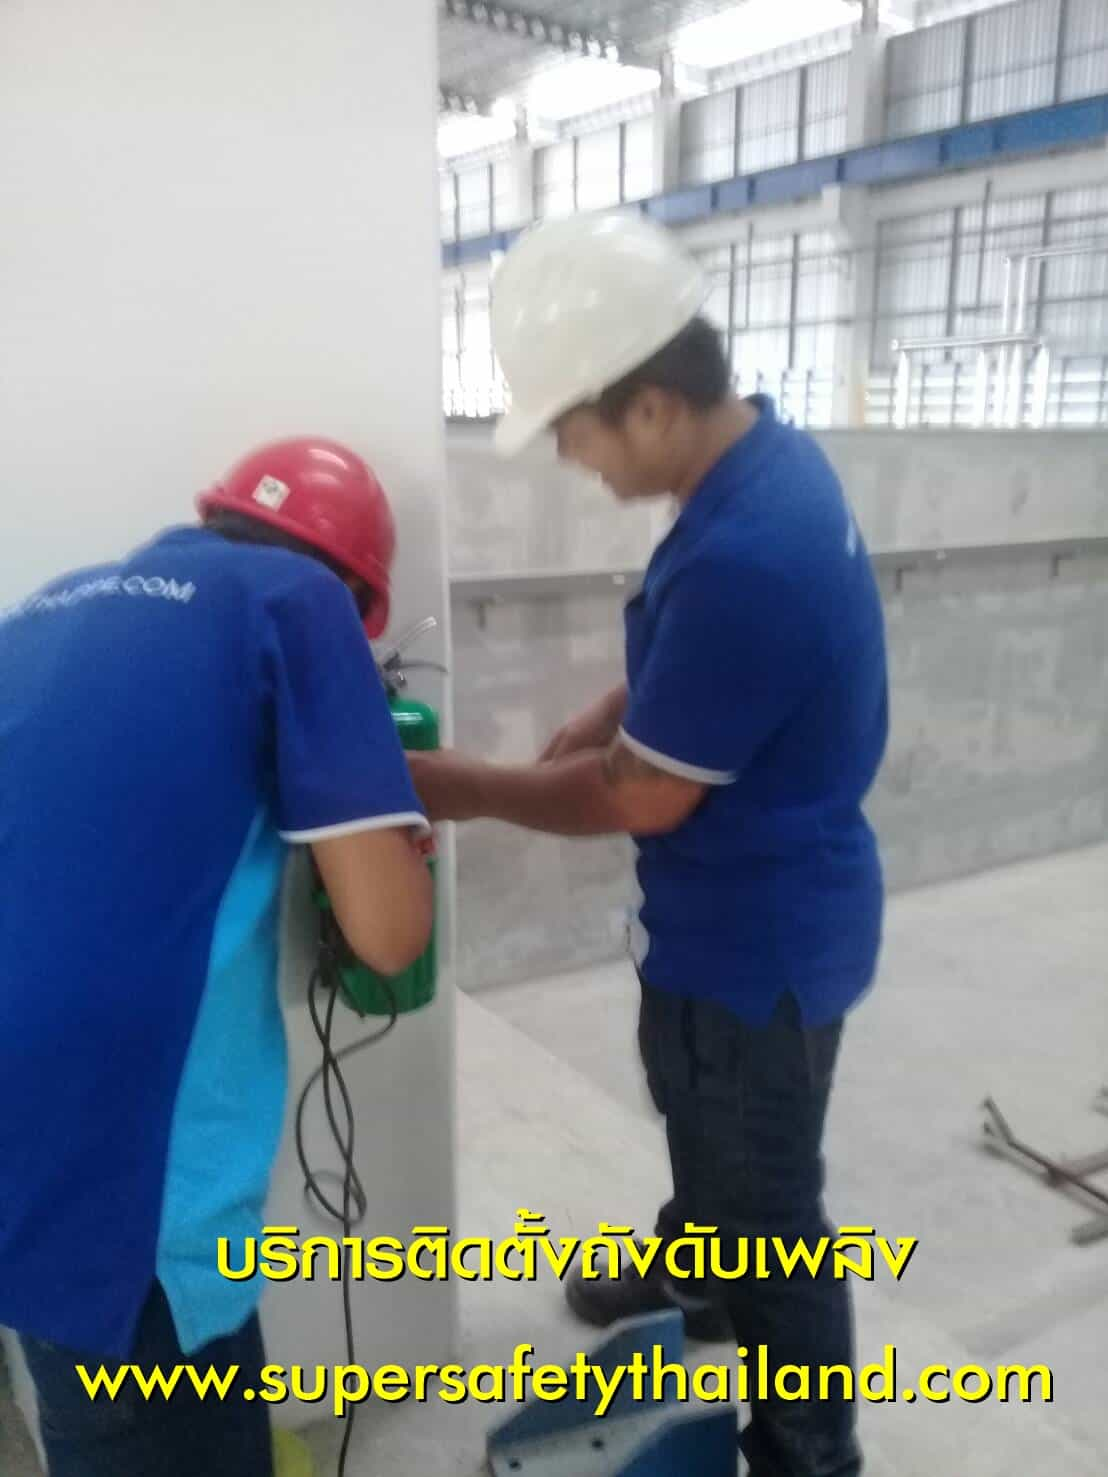 http://www.supersafetythailand.com/wp-content/uploads/2018/11/%E0%B8%9A%E0%B8%A3%E0%B8%B4%E0%B8%81%E0%B8%B2%E0%B8%A3%E0%B8%95%E0%B8%B4%E0%B8%94%E0%B8%95%E0%B8%B1%E0%B9%89%E0%B8%87%E0%B8%96%E0%B8%B1%E0%B8%87%E0%B8%94%E0%B8%B1%E0%B8%9A%E0%B9%80%E0%B8%9E%E0%B8%A5%E0%B8%B4%E0%B8%87.jpg